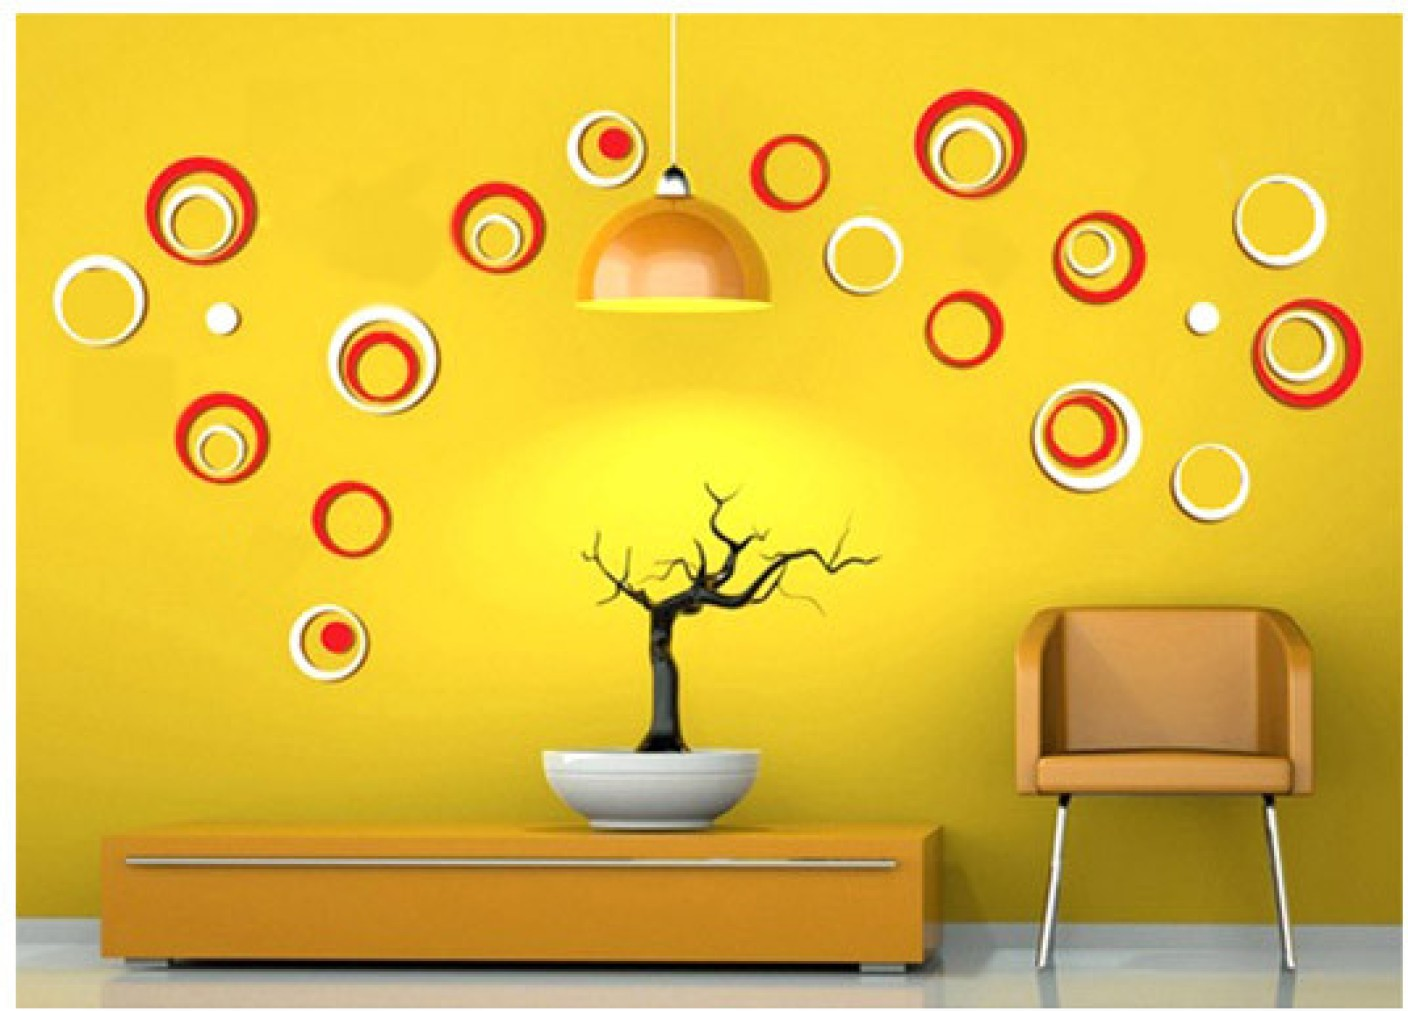 WoW Wall Stickers Acrylic Sticker Price in India - Buy WoW ...